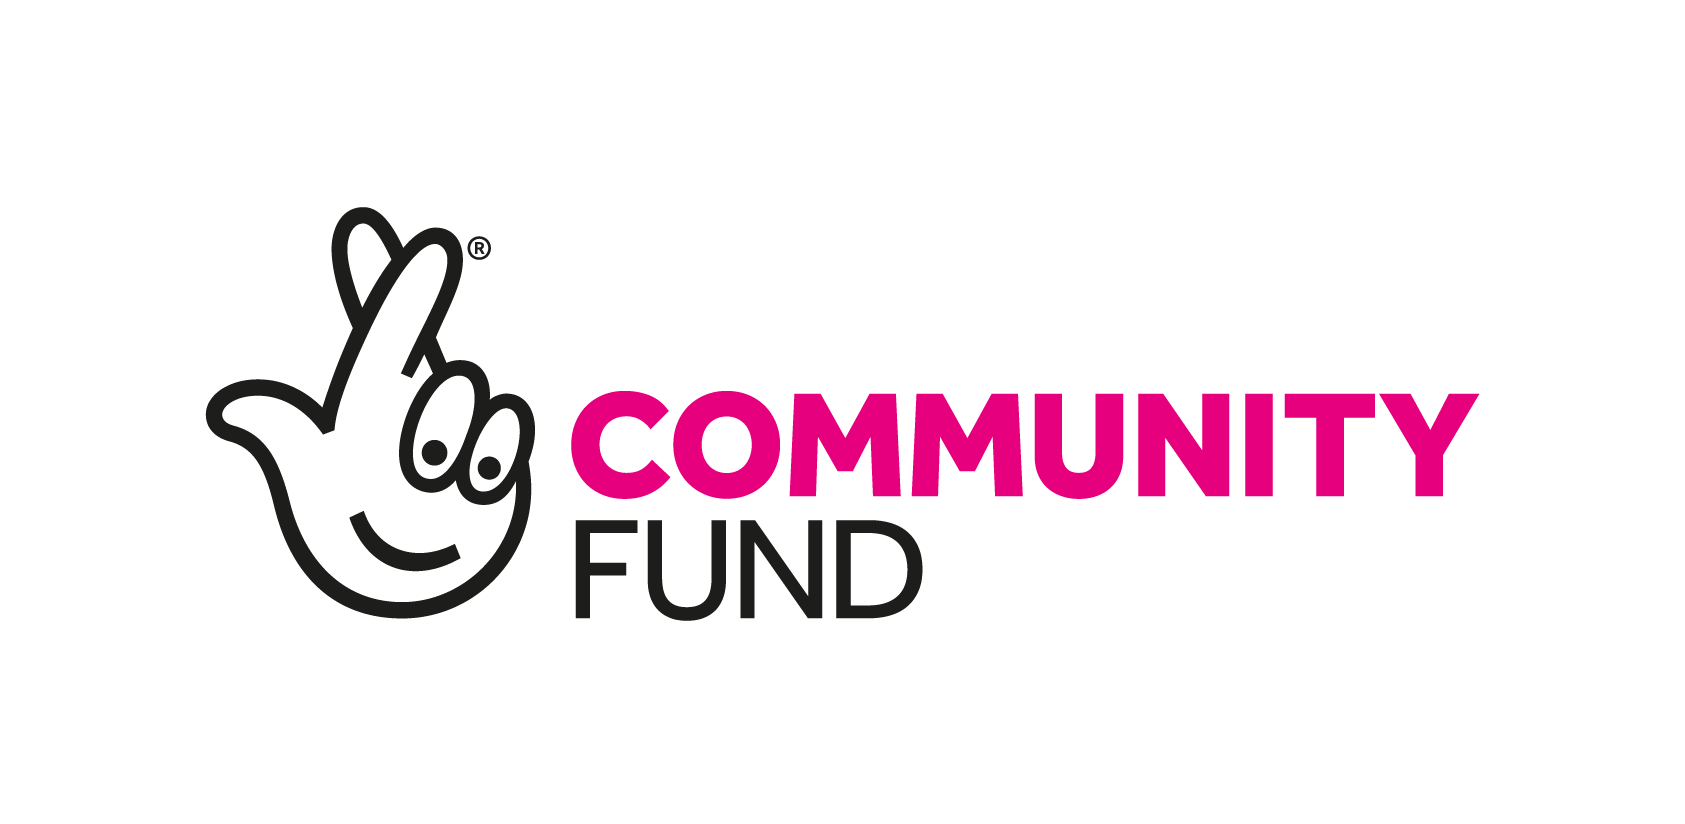 - Grand Gestures gratefully acknowledges support from the Community Fund. The grant enables us to live richer lives and to celebrate life expanding and horizons broadening.